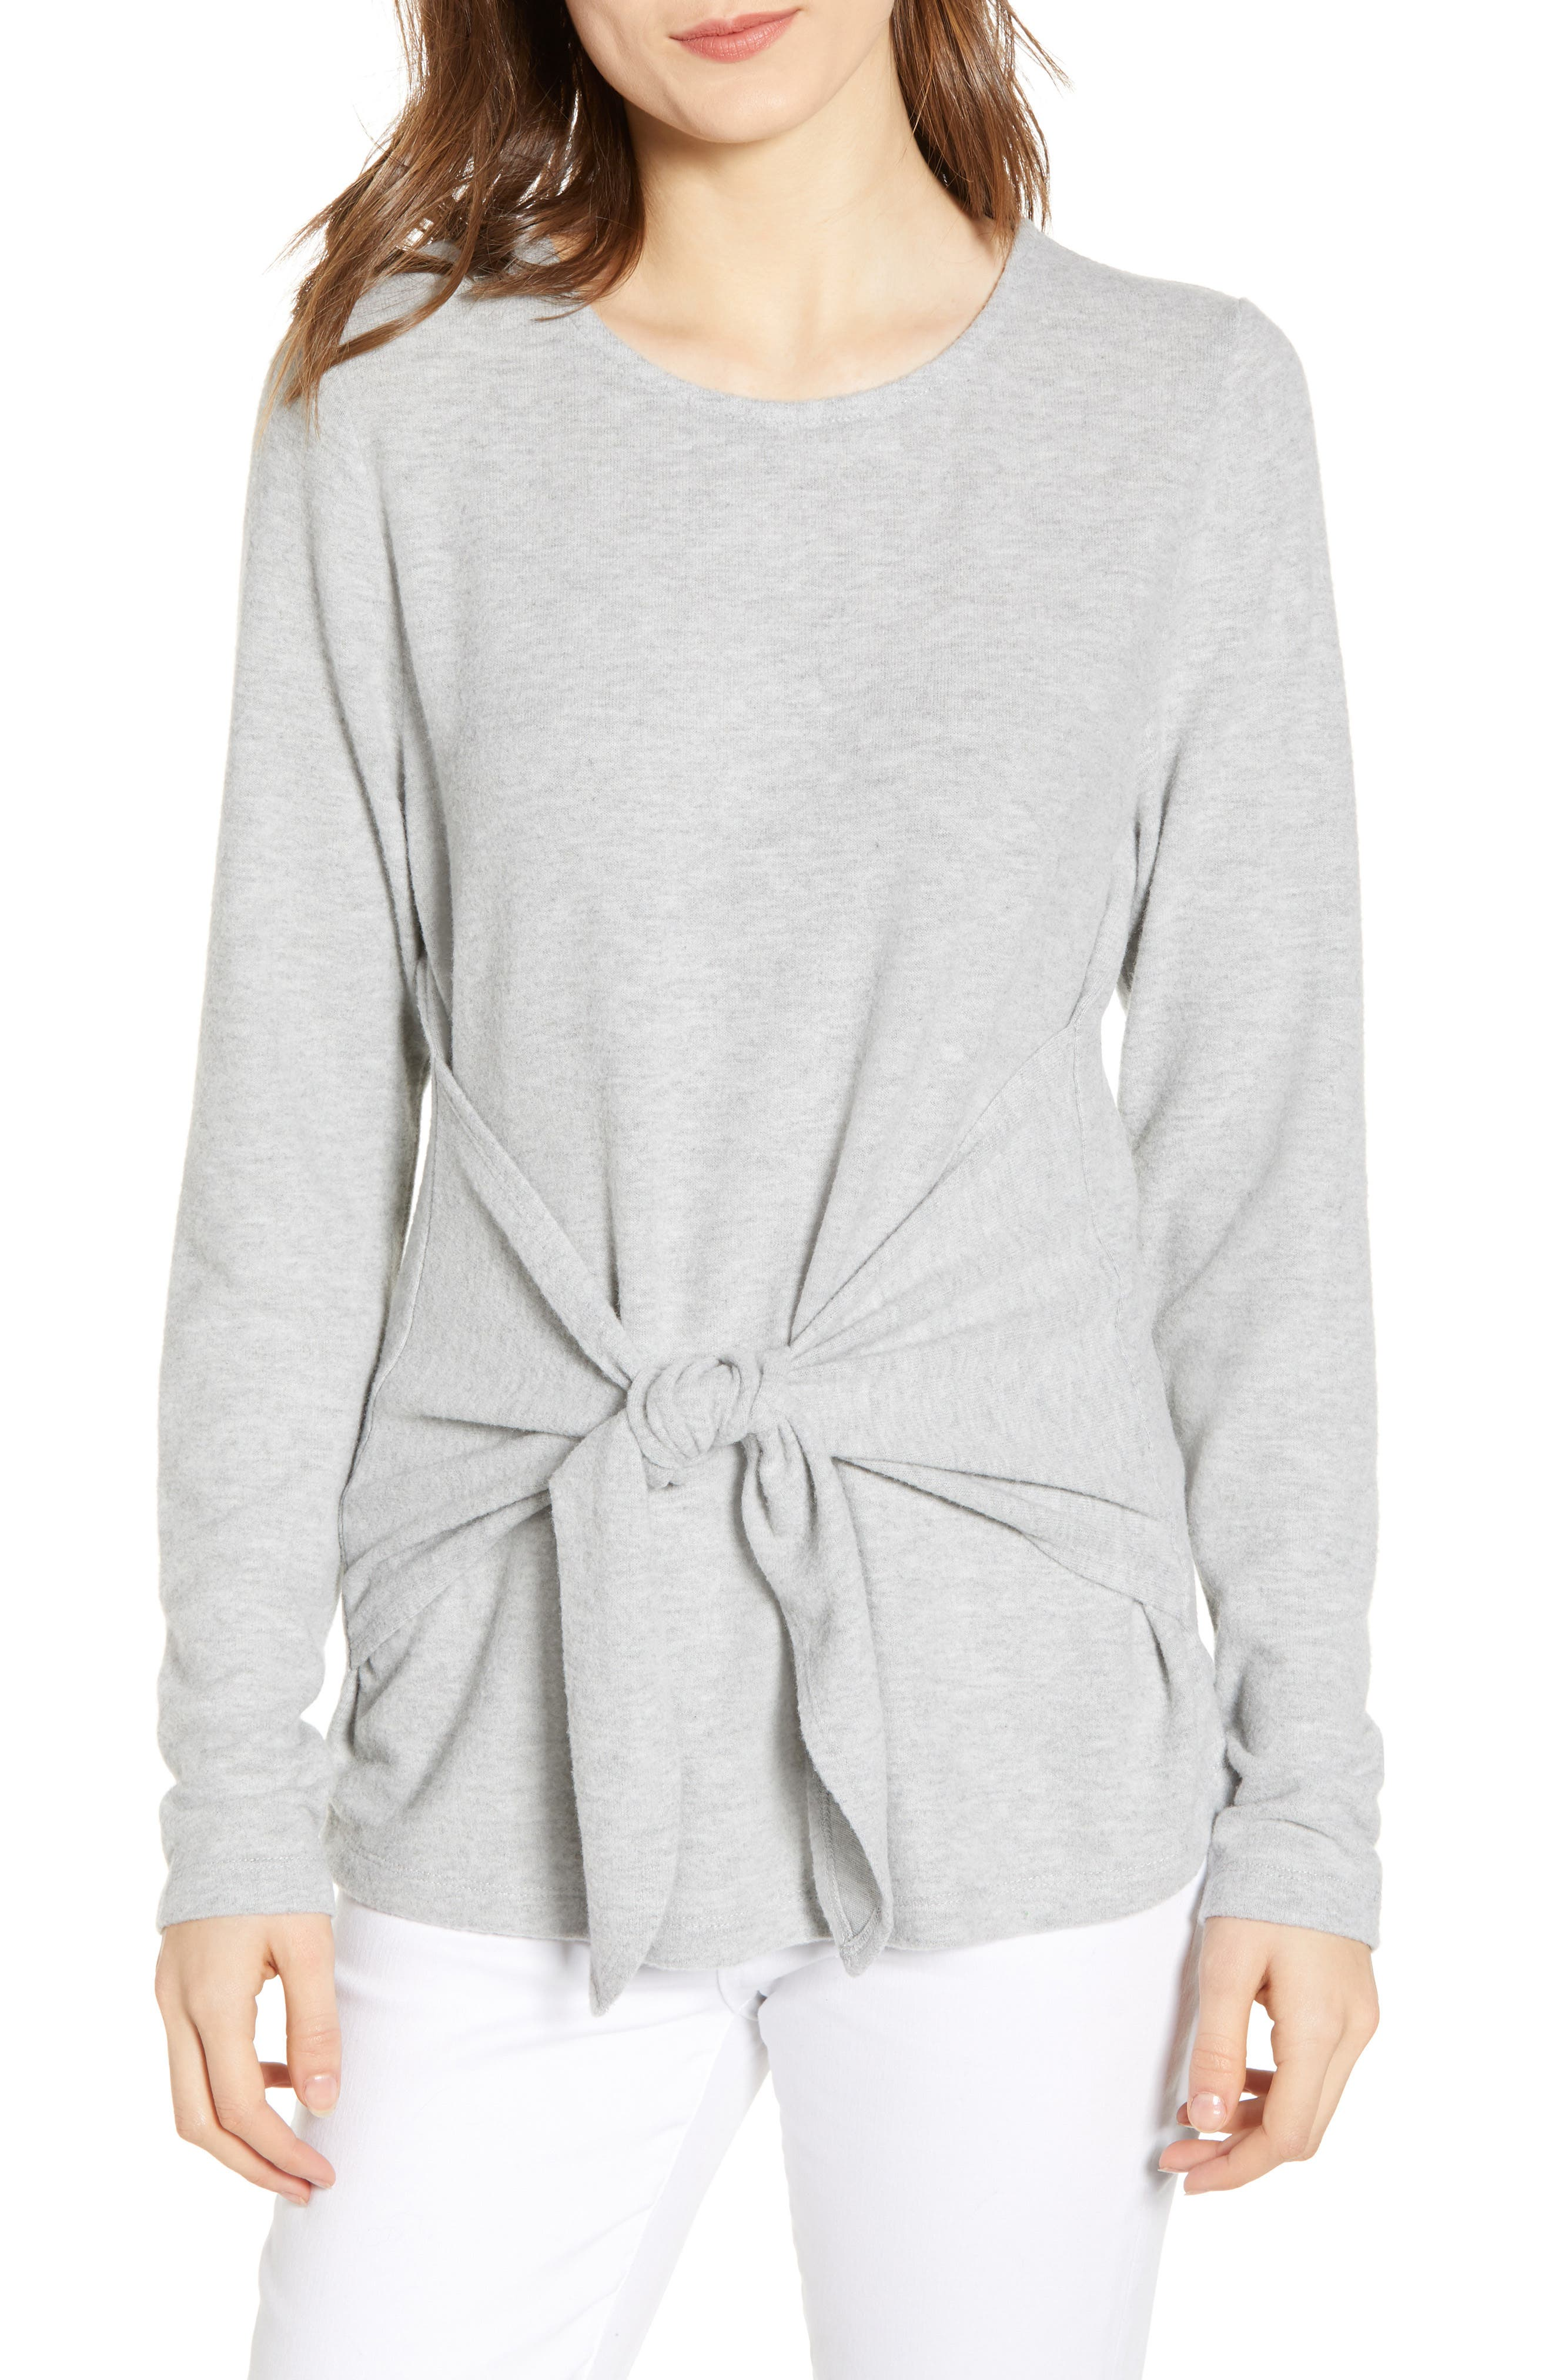 SOCIALITE, Tie Front Top, Main thumbnail 1, color, HEATHER GREY